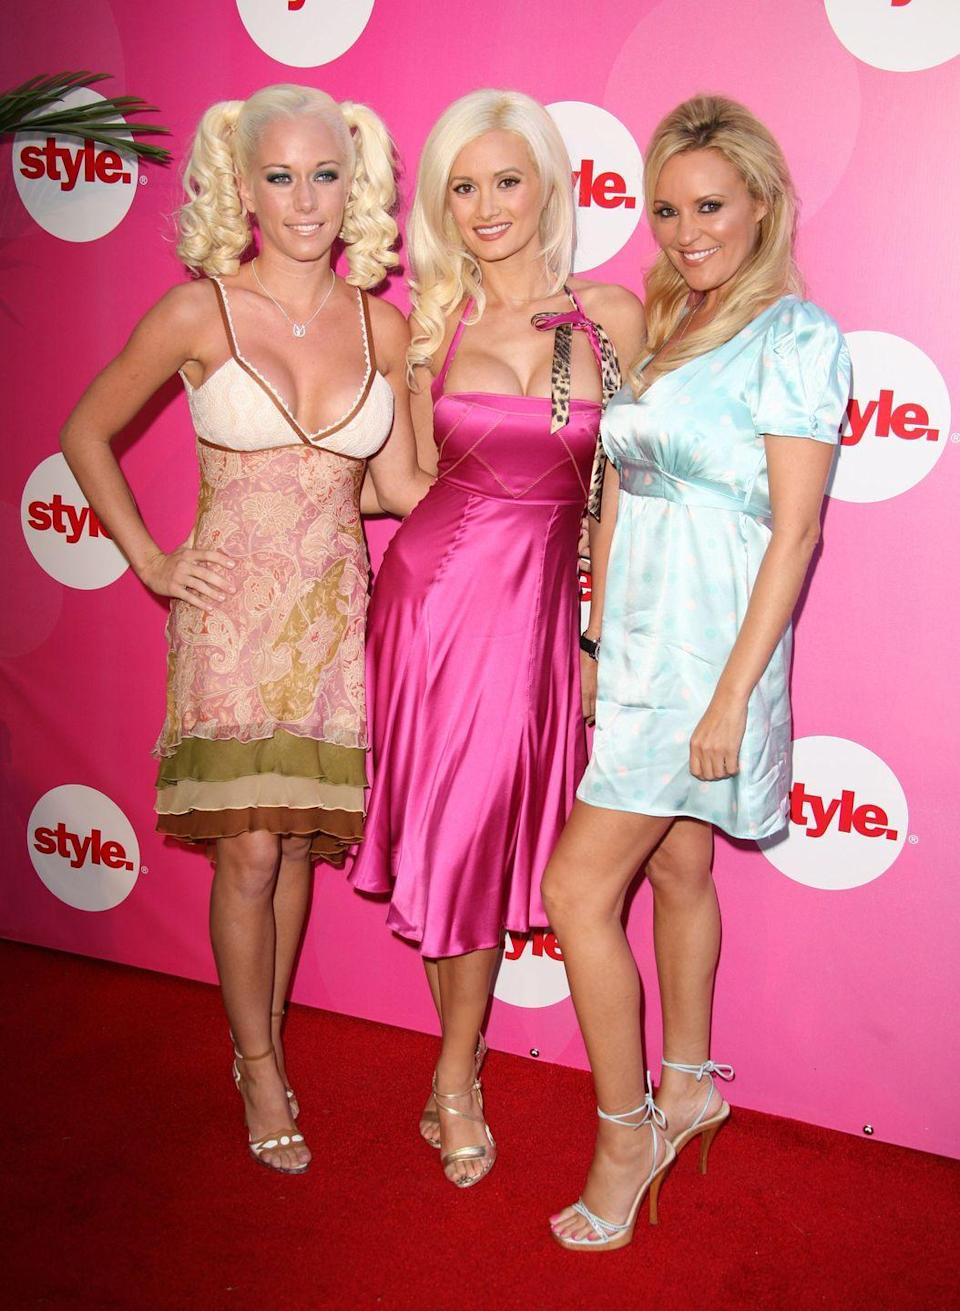 """<p>The stars of E!'s <em>The Girls Next Door</em> (2005-2009), Kendra Wilkinson, Holly Madison, and Bridget Marquardt, go full glam for the red carpet. The show famously captured their lives living at the Playboy Mansion, which <a href=""""https://toofab.com/2021/04/28/holly-madison-girls-next-door-secrets-slams-eps-claims/"""" rel=""""nofollow noopener"""" target=""""_blank"""" data-ylk=""""slk:Madison later revealed"""" class=""""link rapid-noclick-resp"""">Madison later revealed</a> wasn't, uh, all it was made out to be.</p>"""